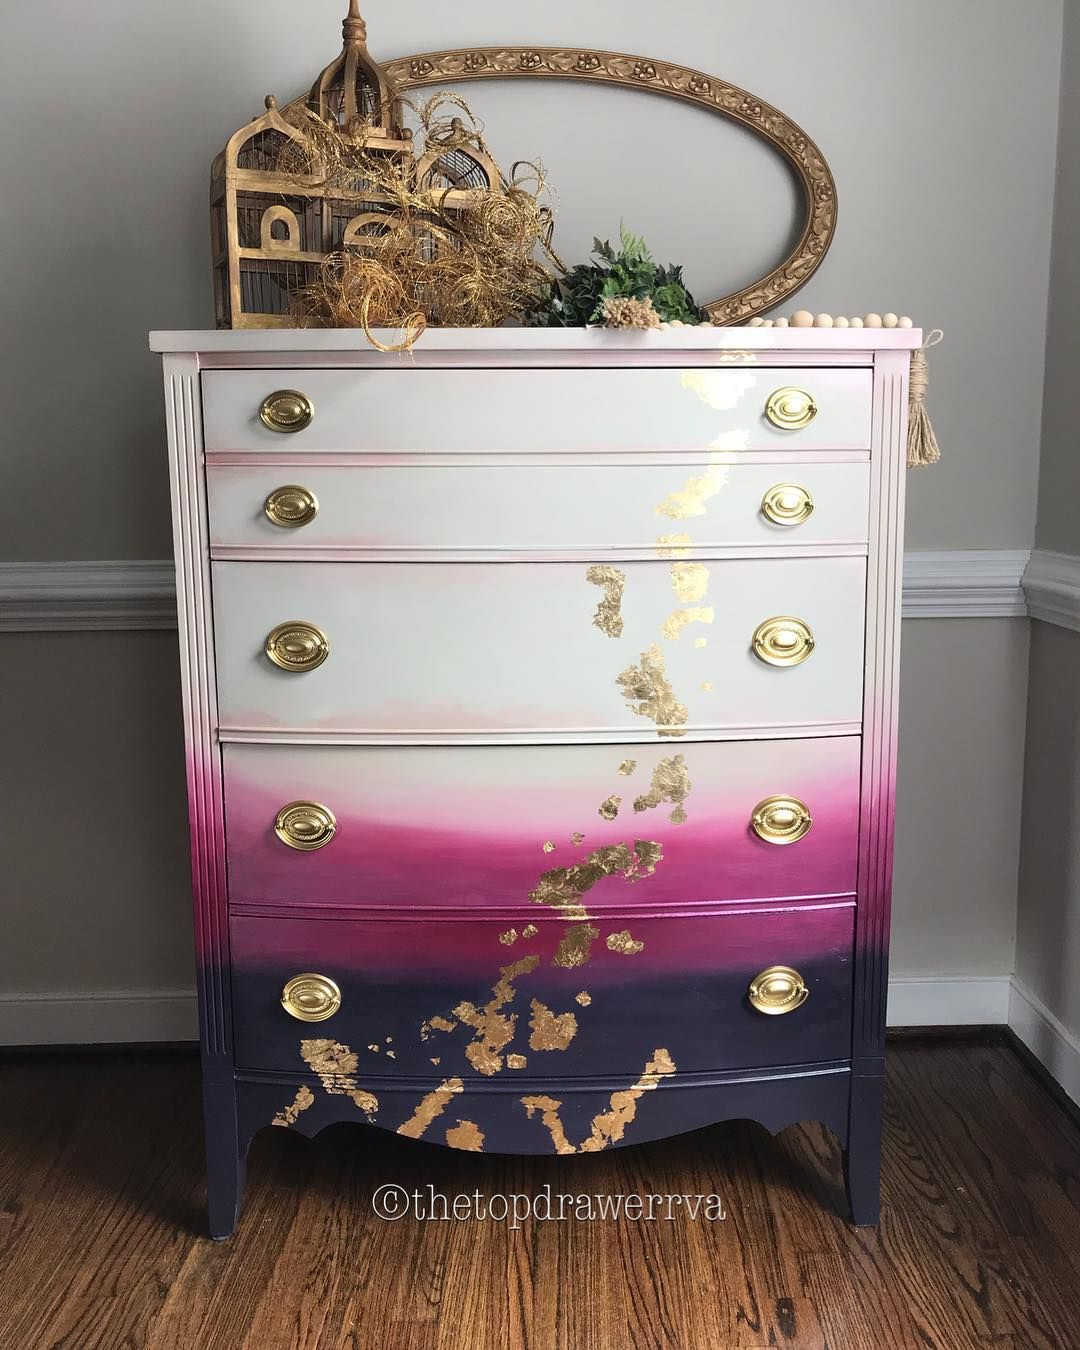 The Top Drawer Rva On Instagram Aubergine To Faded Dove Grey Pearl Pink Highlights Ombre With Metallic Shine G Gold Leaf Furniture Painted Furniture Decor